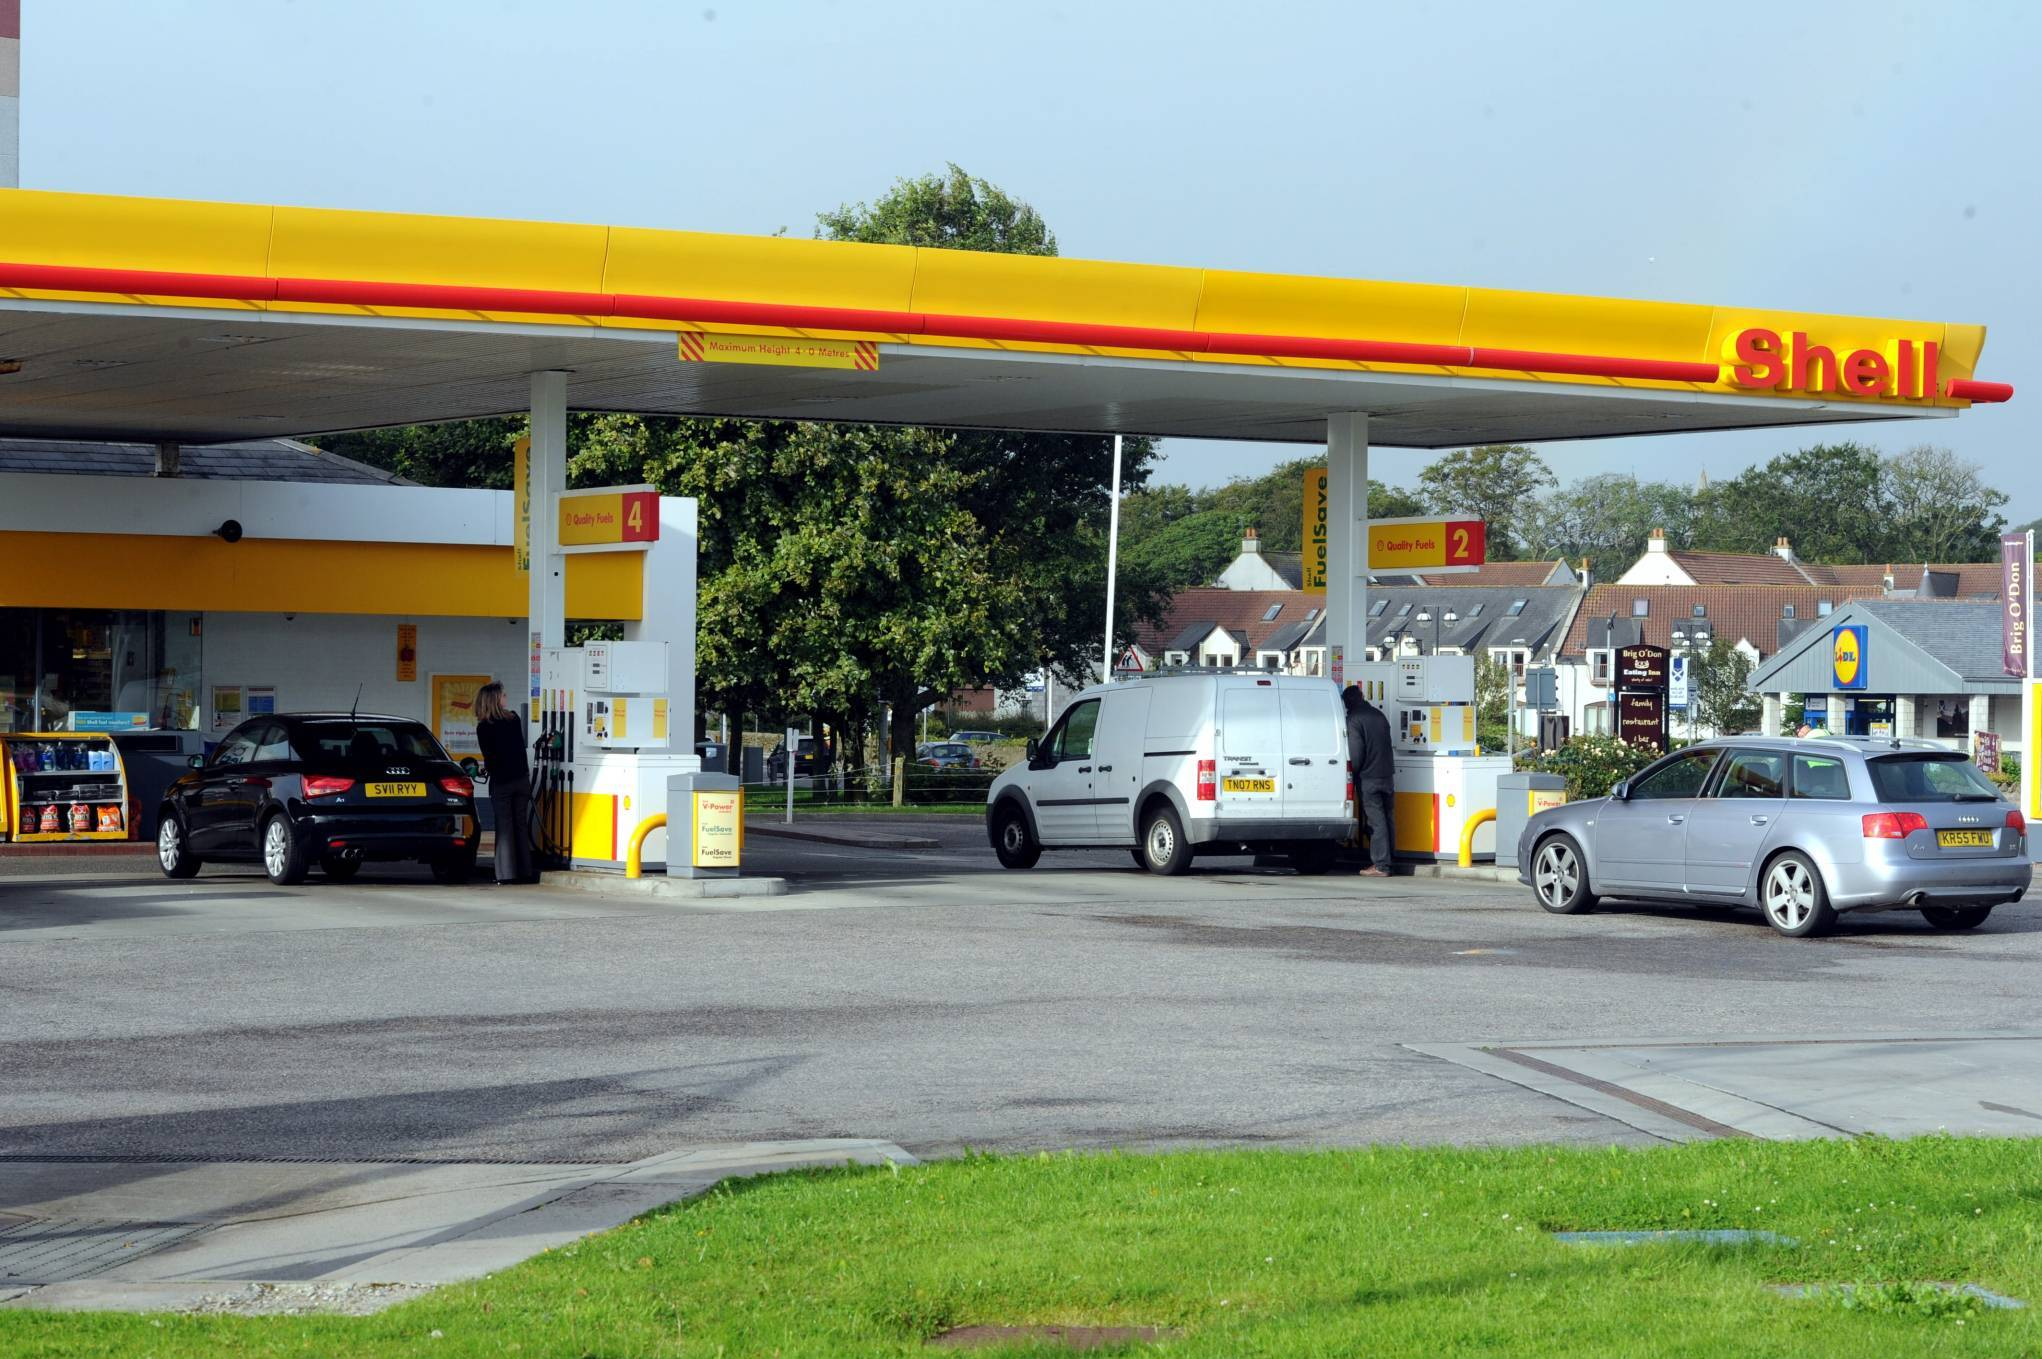 Part of the crime spree allegedly involved petrol being stolen from the Shell garage on King Street.